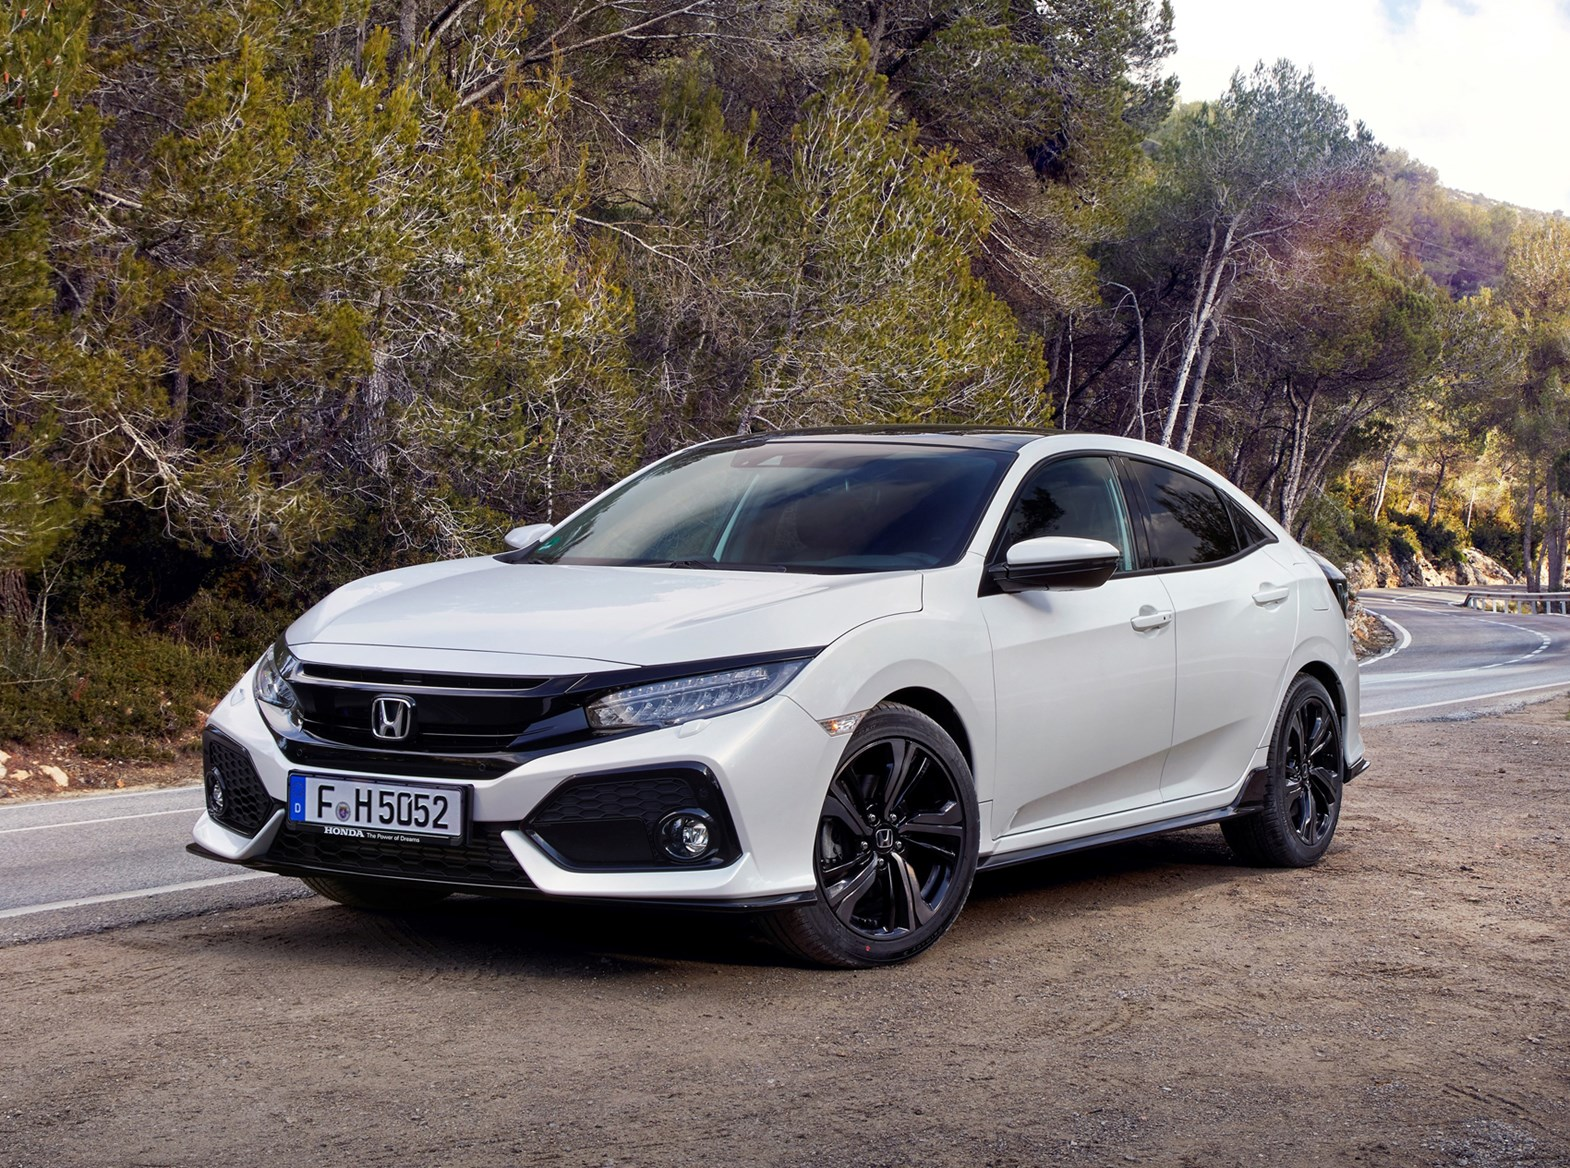 Honda Civic Hatchback For Sale In Pakistan New Honda